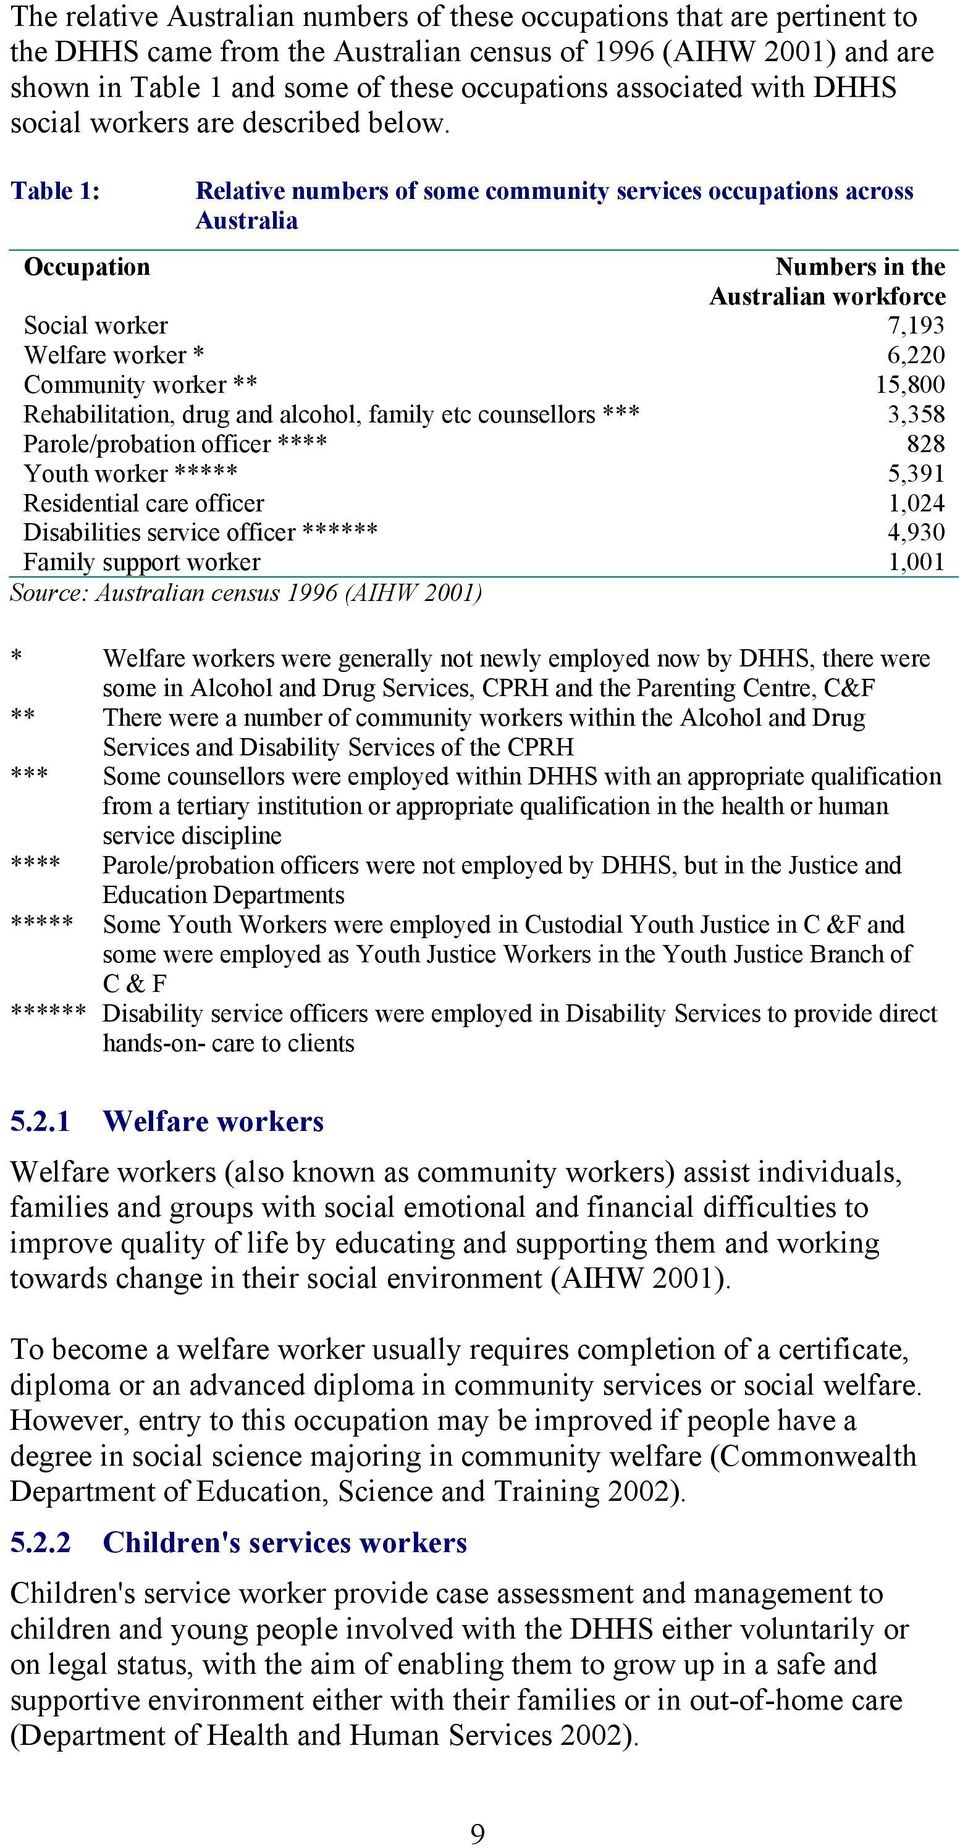 Table 1: Relative numbers of some community services occupations across Australia Occupation Numbers in the Australian workforce Social worker 7,193 Welfare worker * 6,220 Community worker ** 15,800